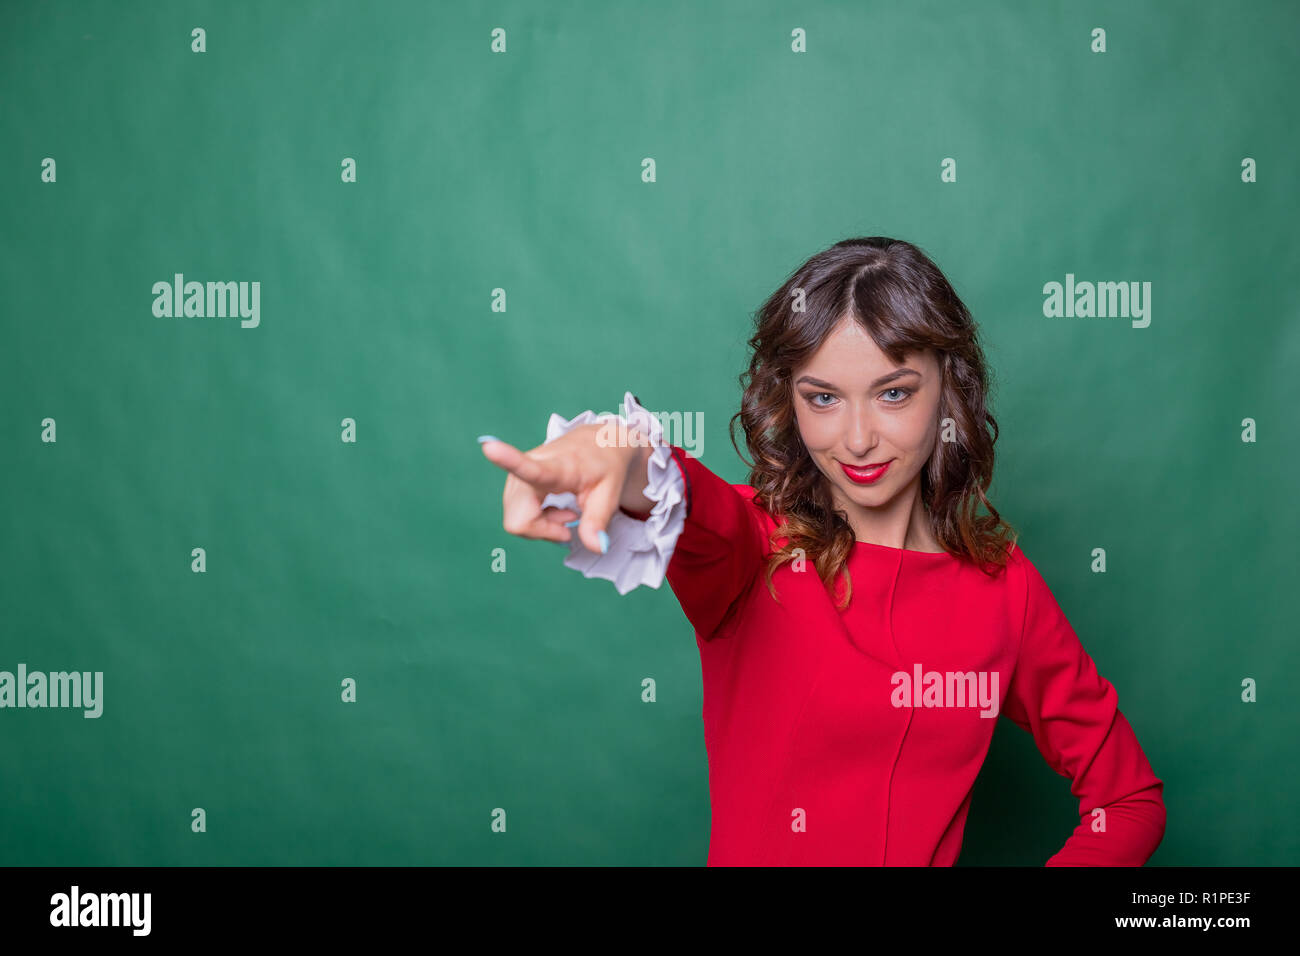 Image of cheerful woman with long brown hair winking and showing index finger aside meaning hey you isolated over green background.Emotional expressing woman in red dress, red lips and dark curly hairstyle.Copy space - Stock Image